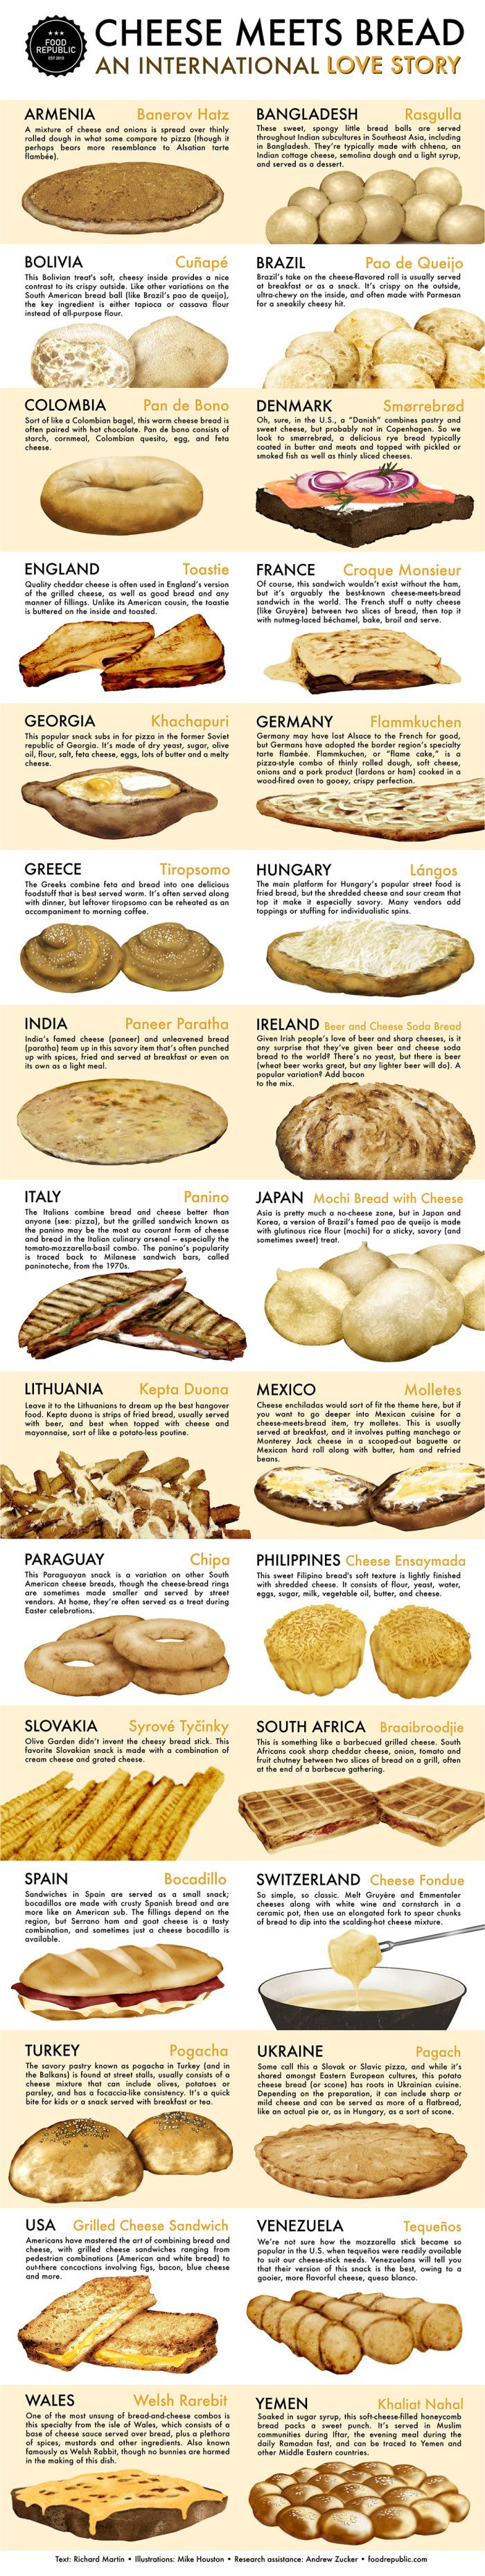 Infographic: 30 Delicious #Bread And #Cheese Combinations From Around The World - DesignTAXI.com